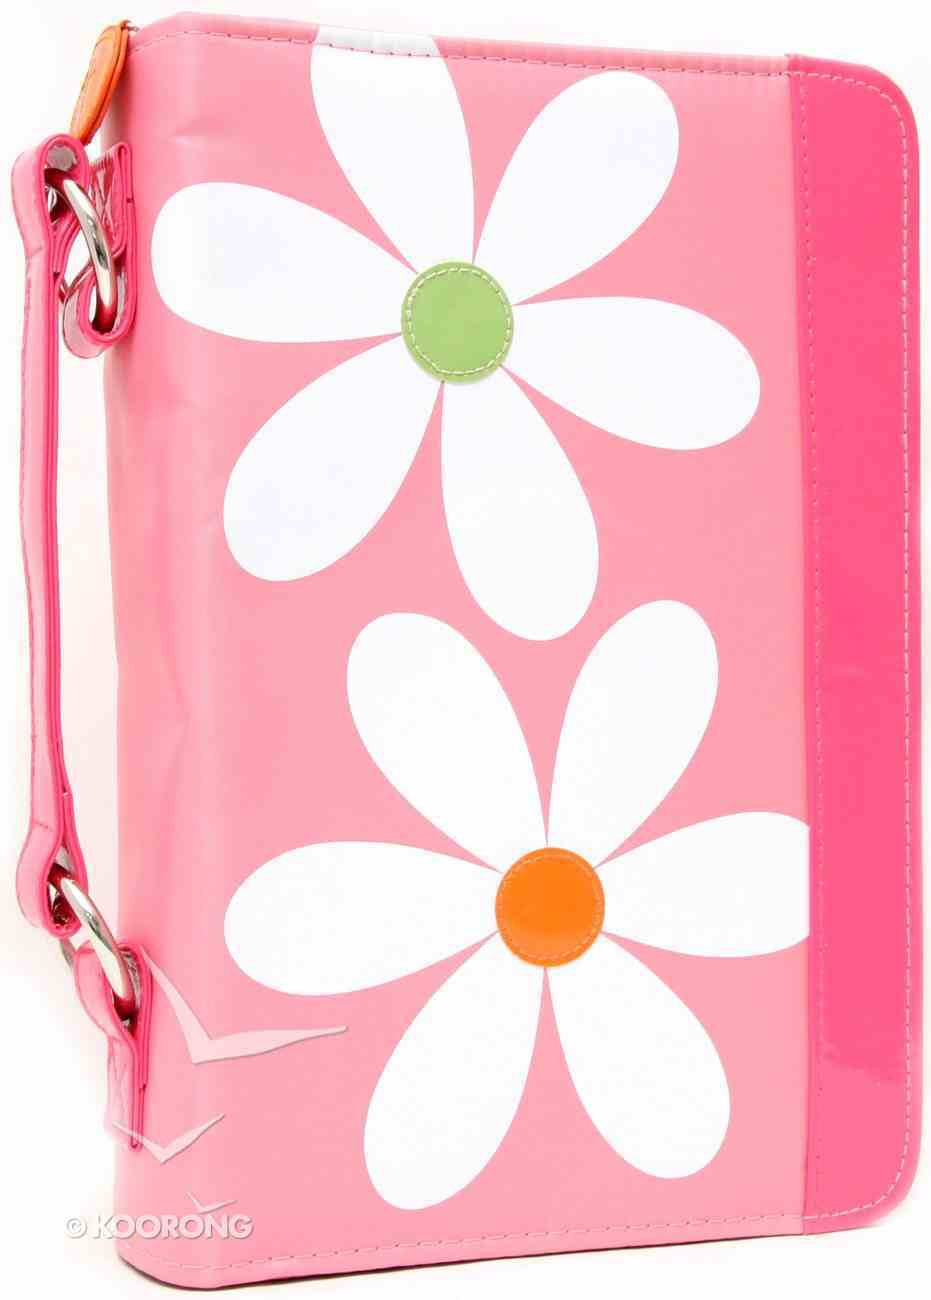 Bible Cover Daisy Pink With Zipper Pocket - Medium Bible Cover